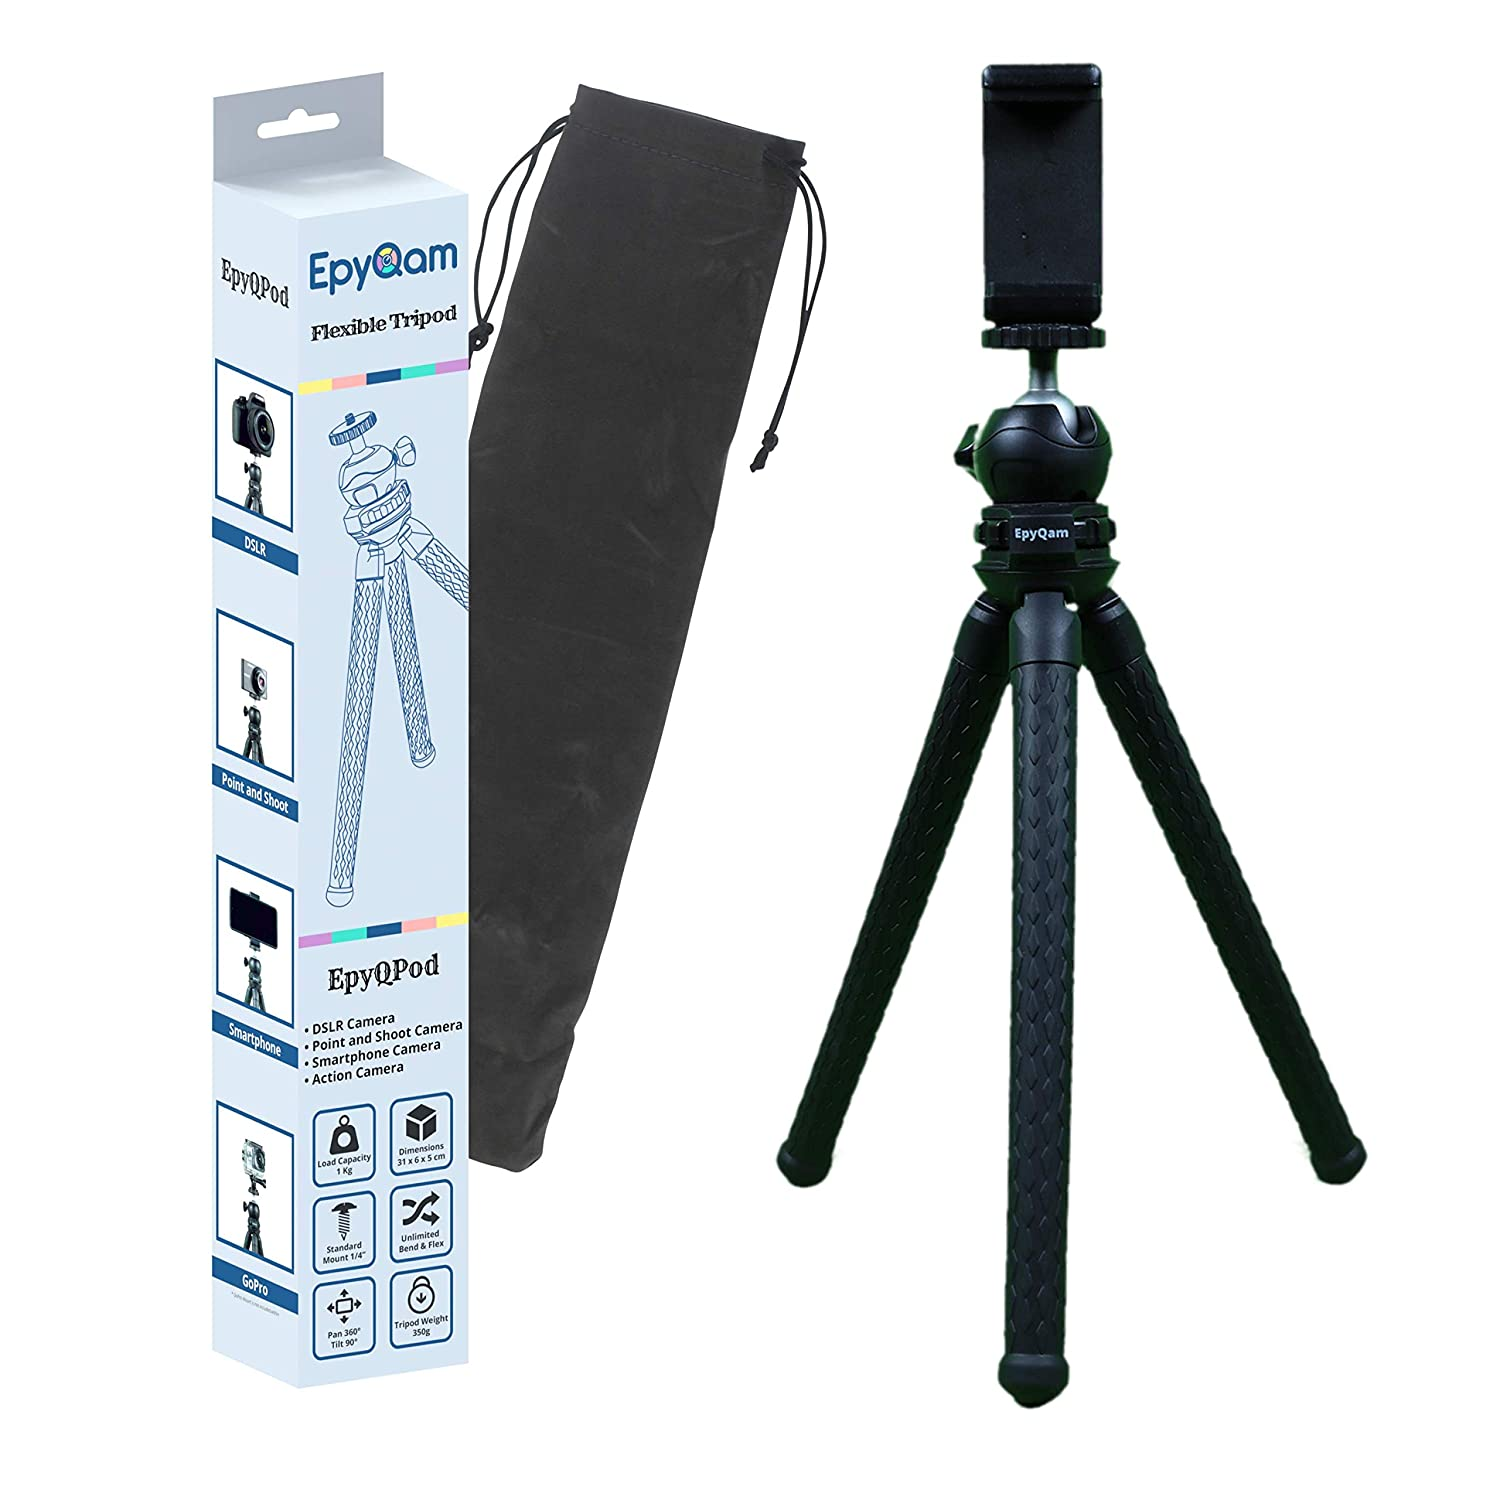 Epyqam Flexible Tripod For DSLR Camera And Mobile Phone (Black)